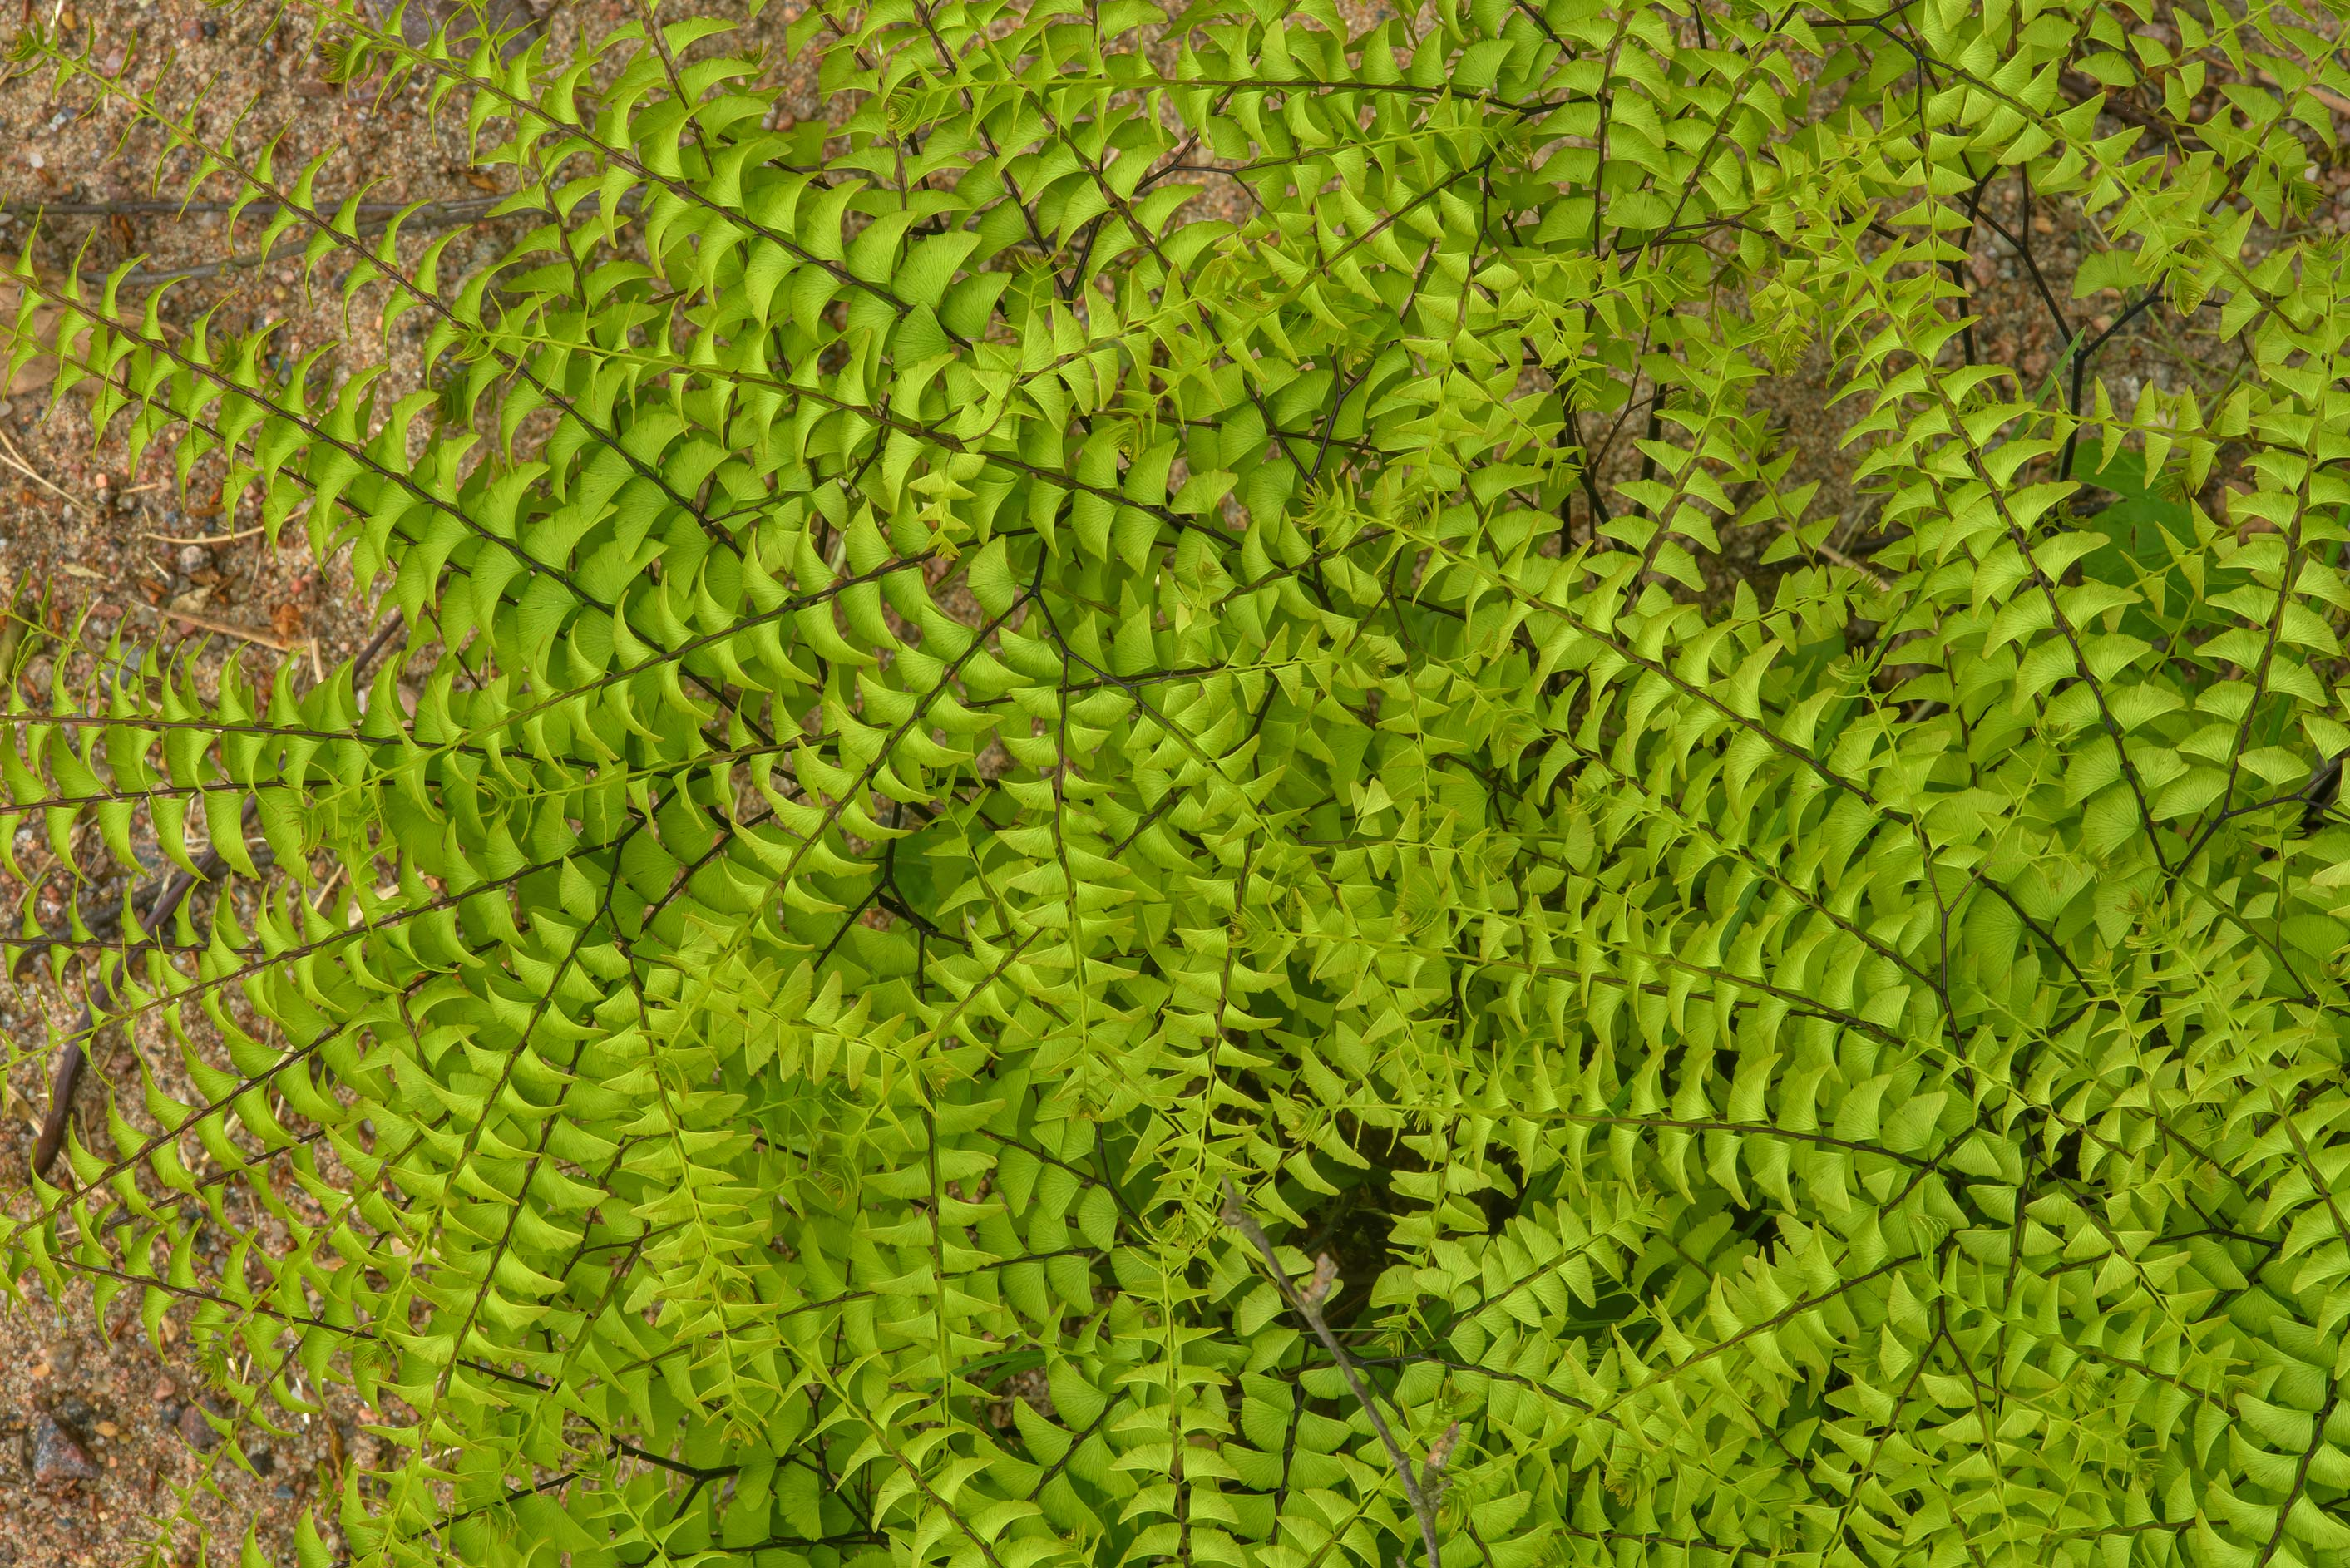 Leaves of northern maidenhair fern (Adiantum...Institute. St.Petersburg, Russia